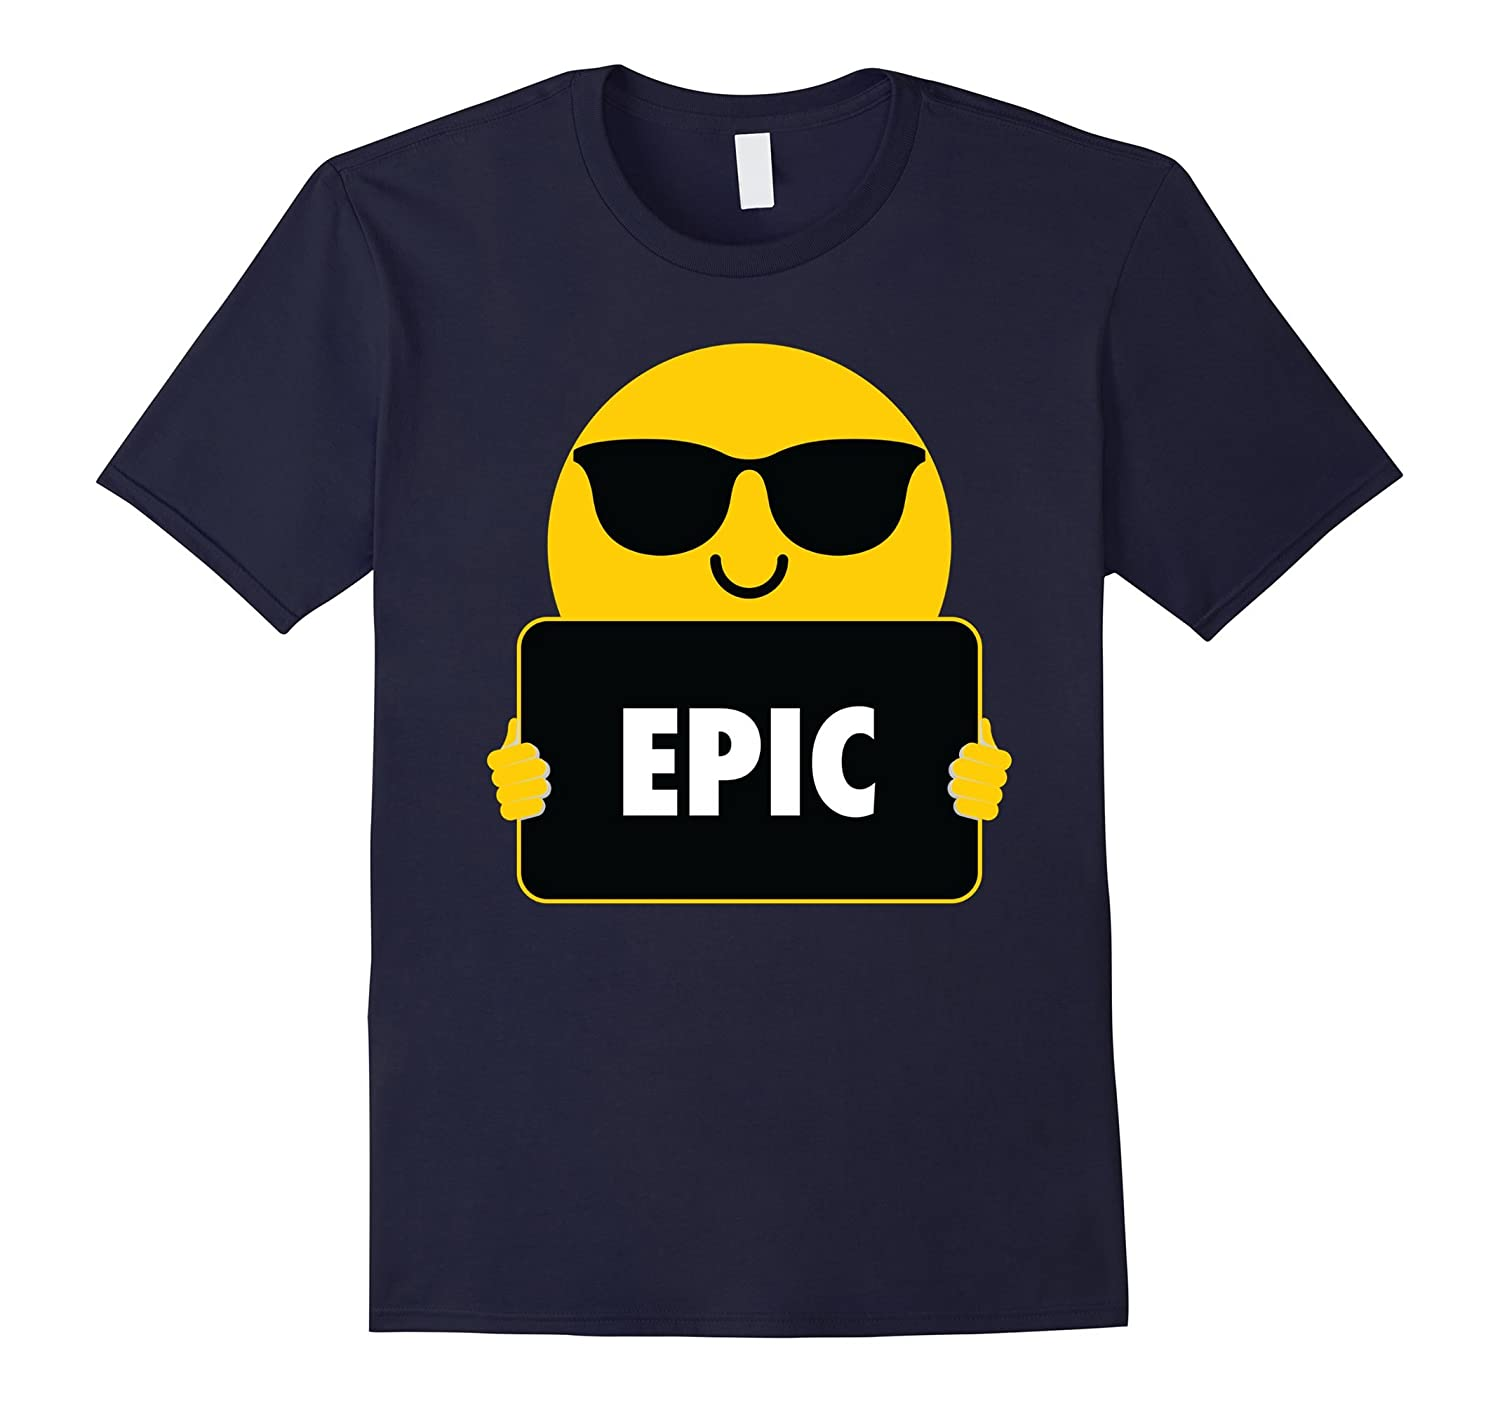 Epic Shirt Sunglasses Emoji T-Shirt Tee-T-Shirt